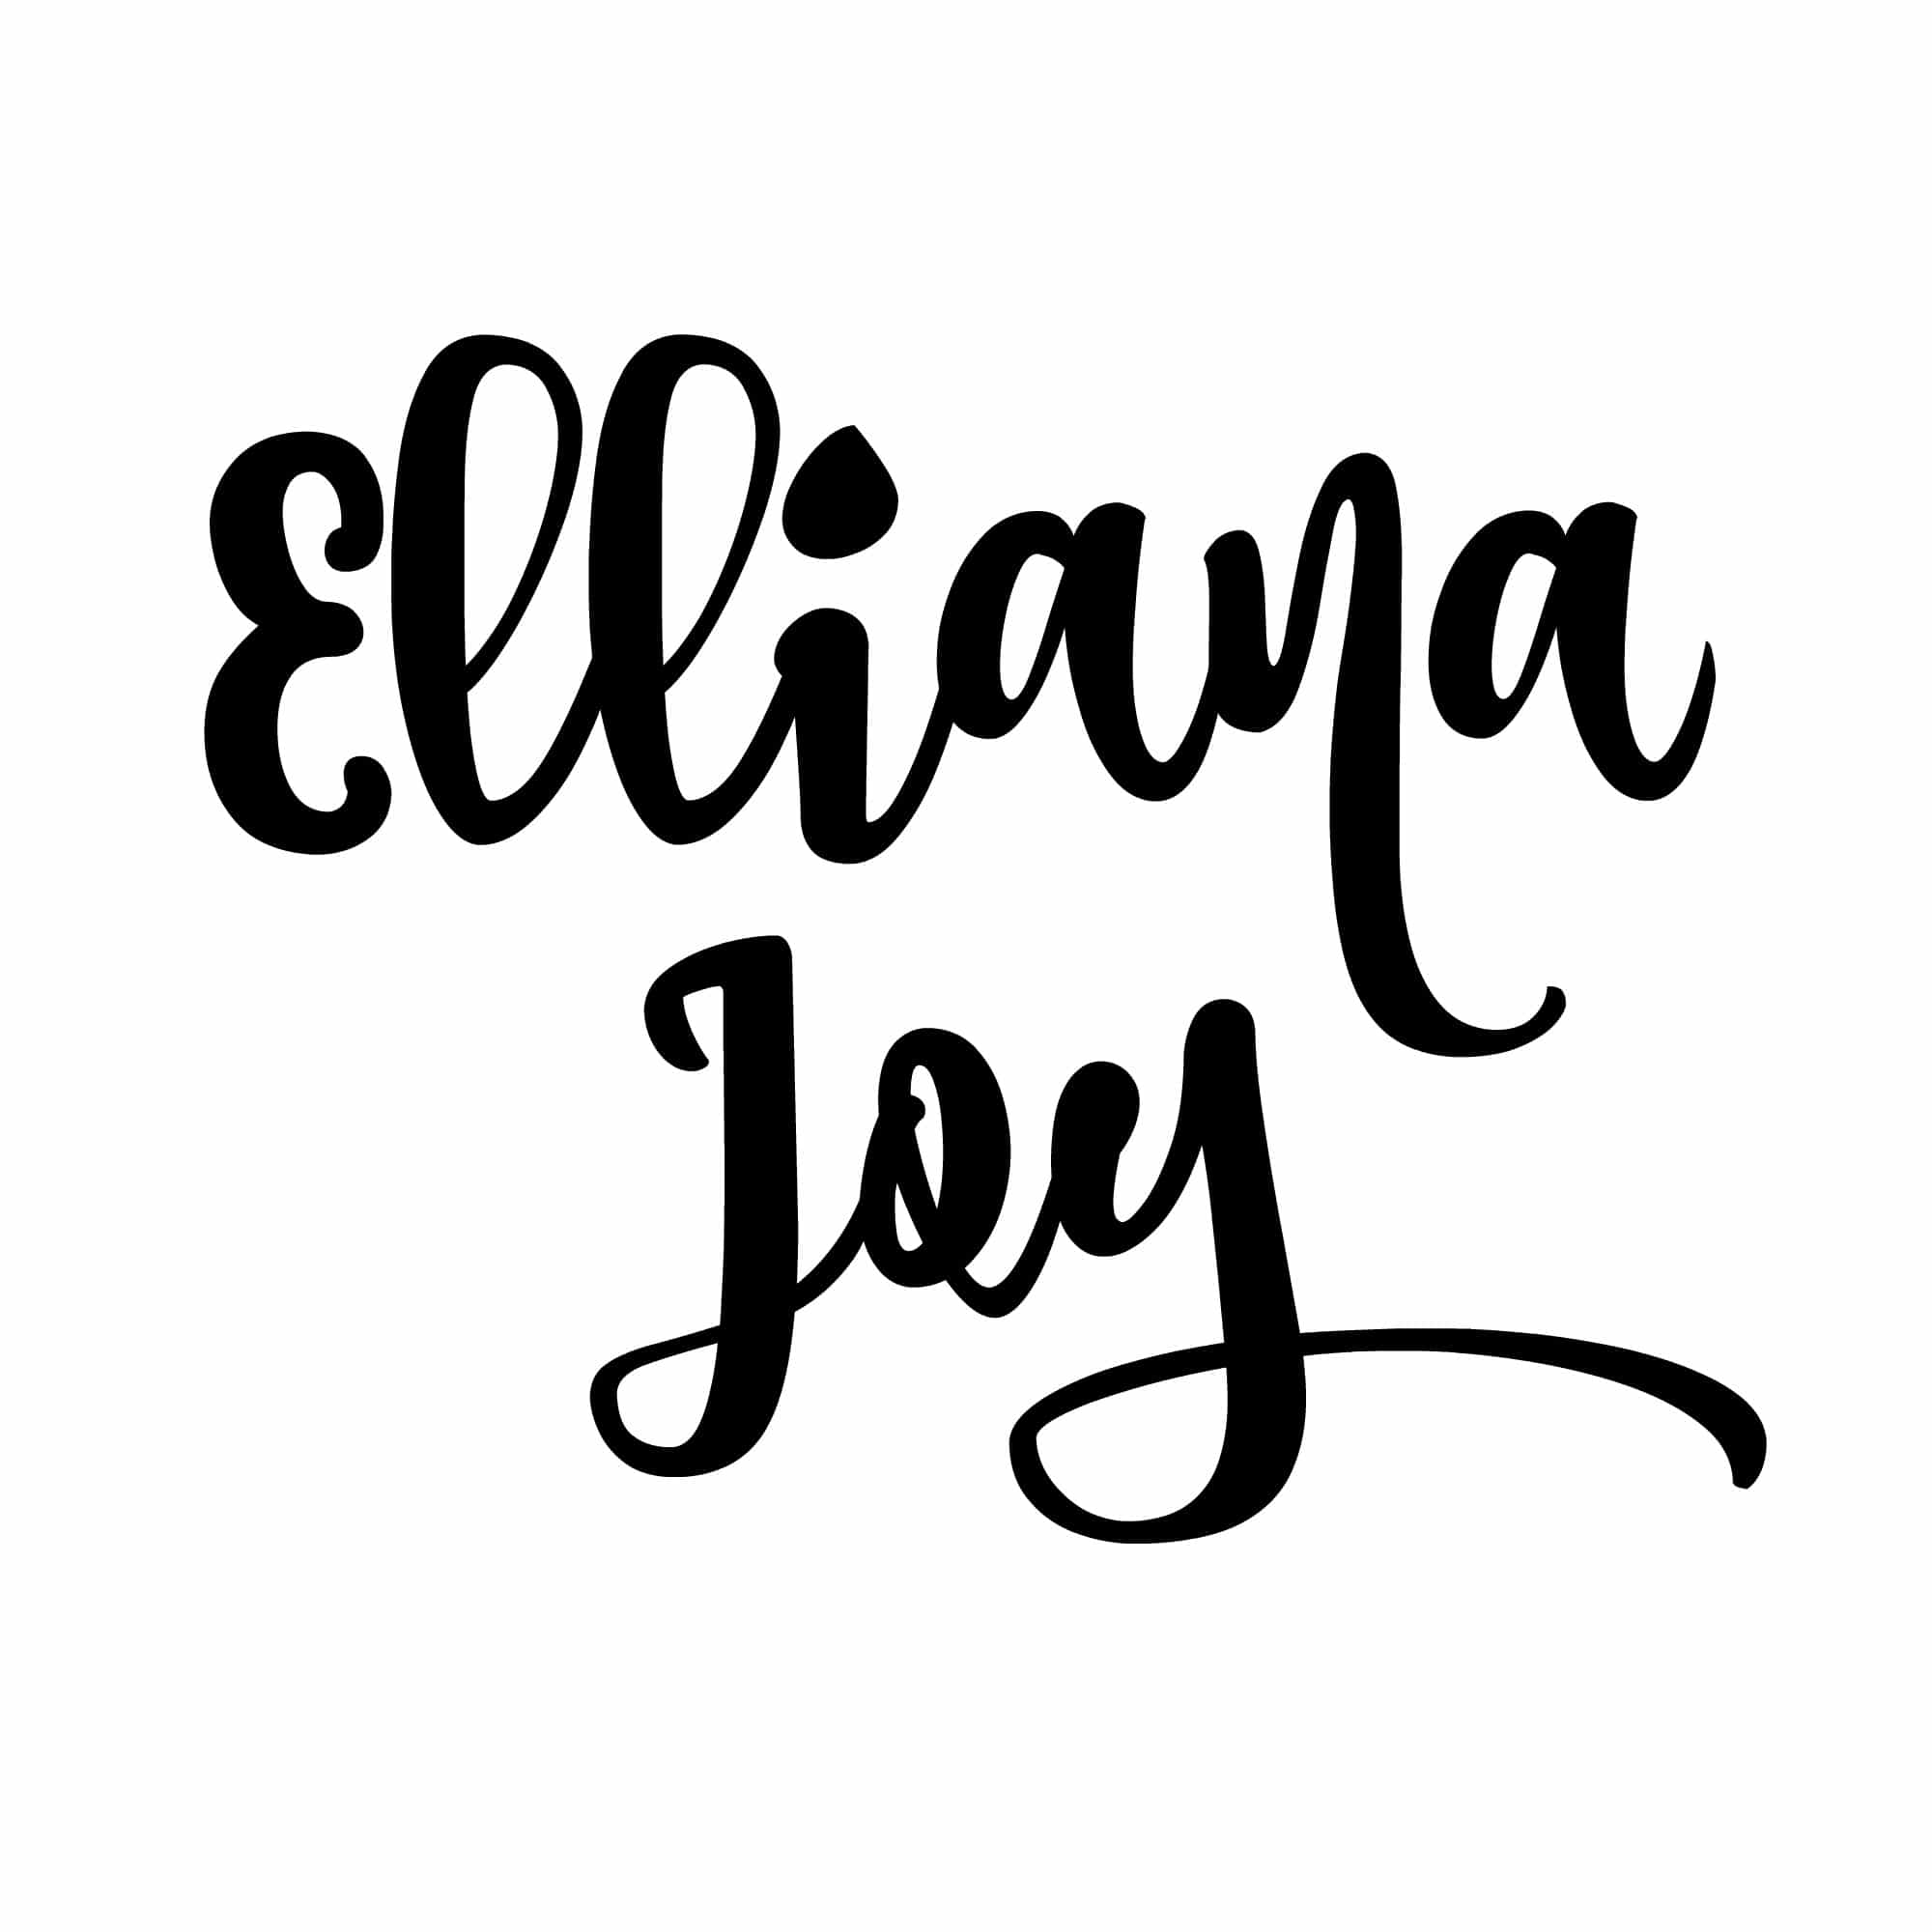 elliana-joy